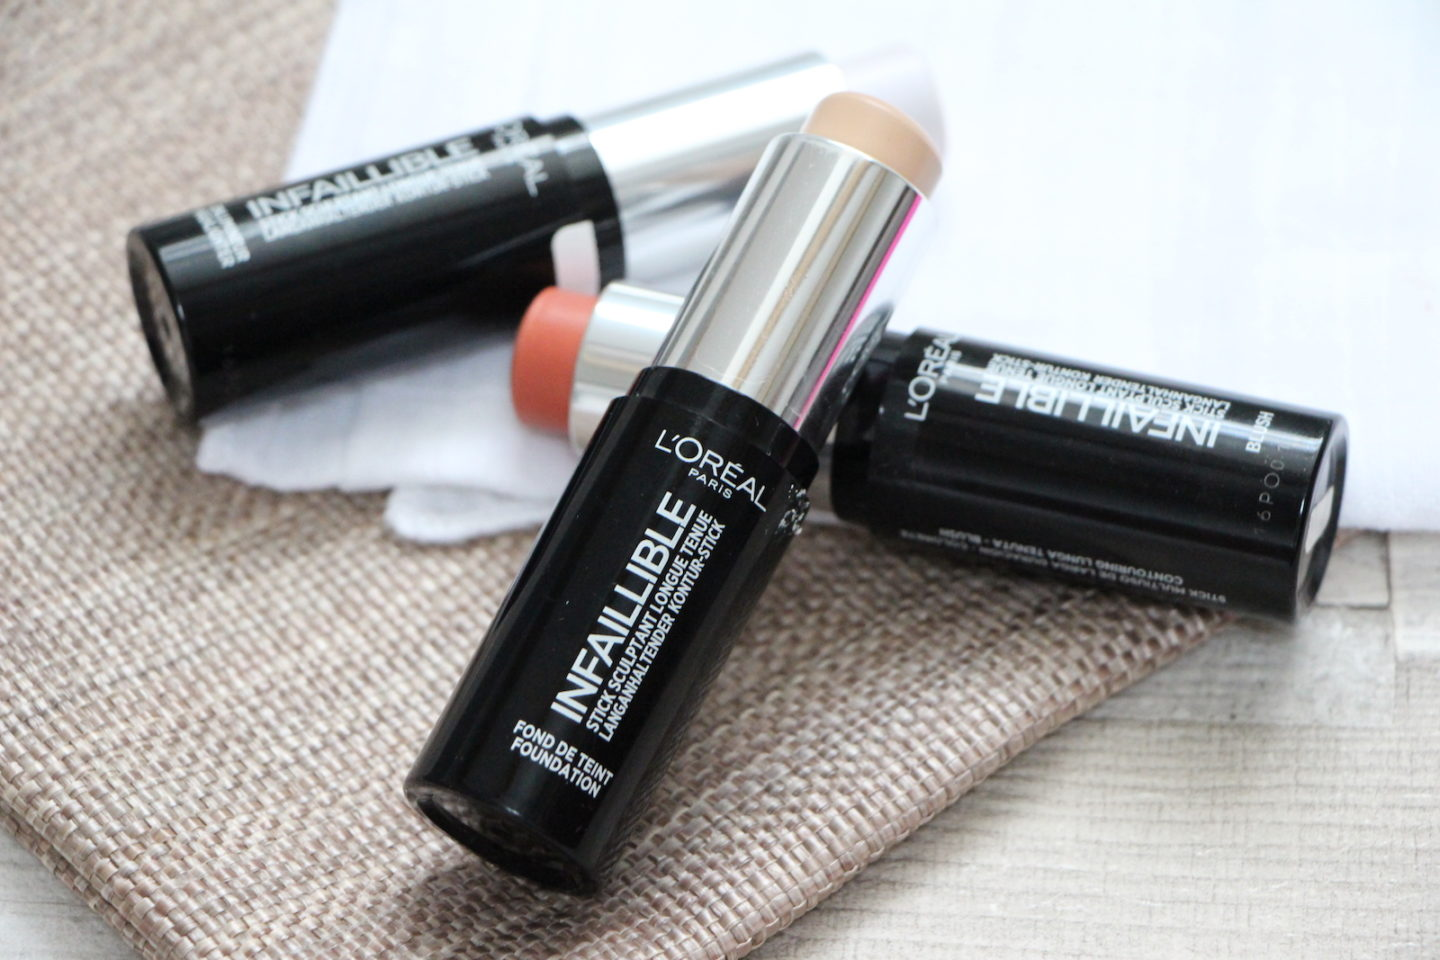 Foundation Review: L'Oreal Paris Infallible Shaping Stick